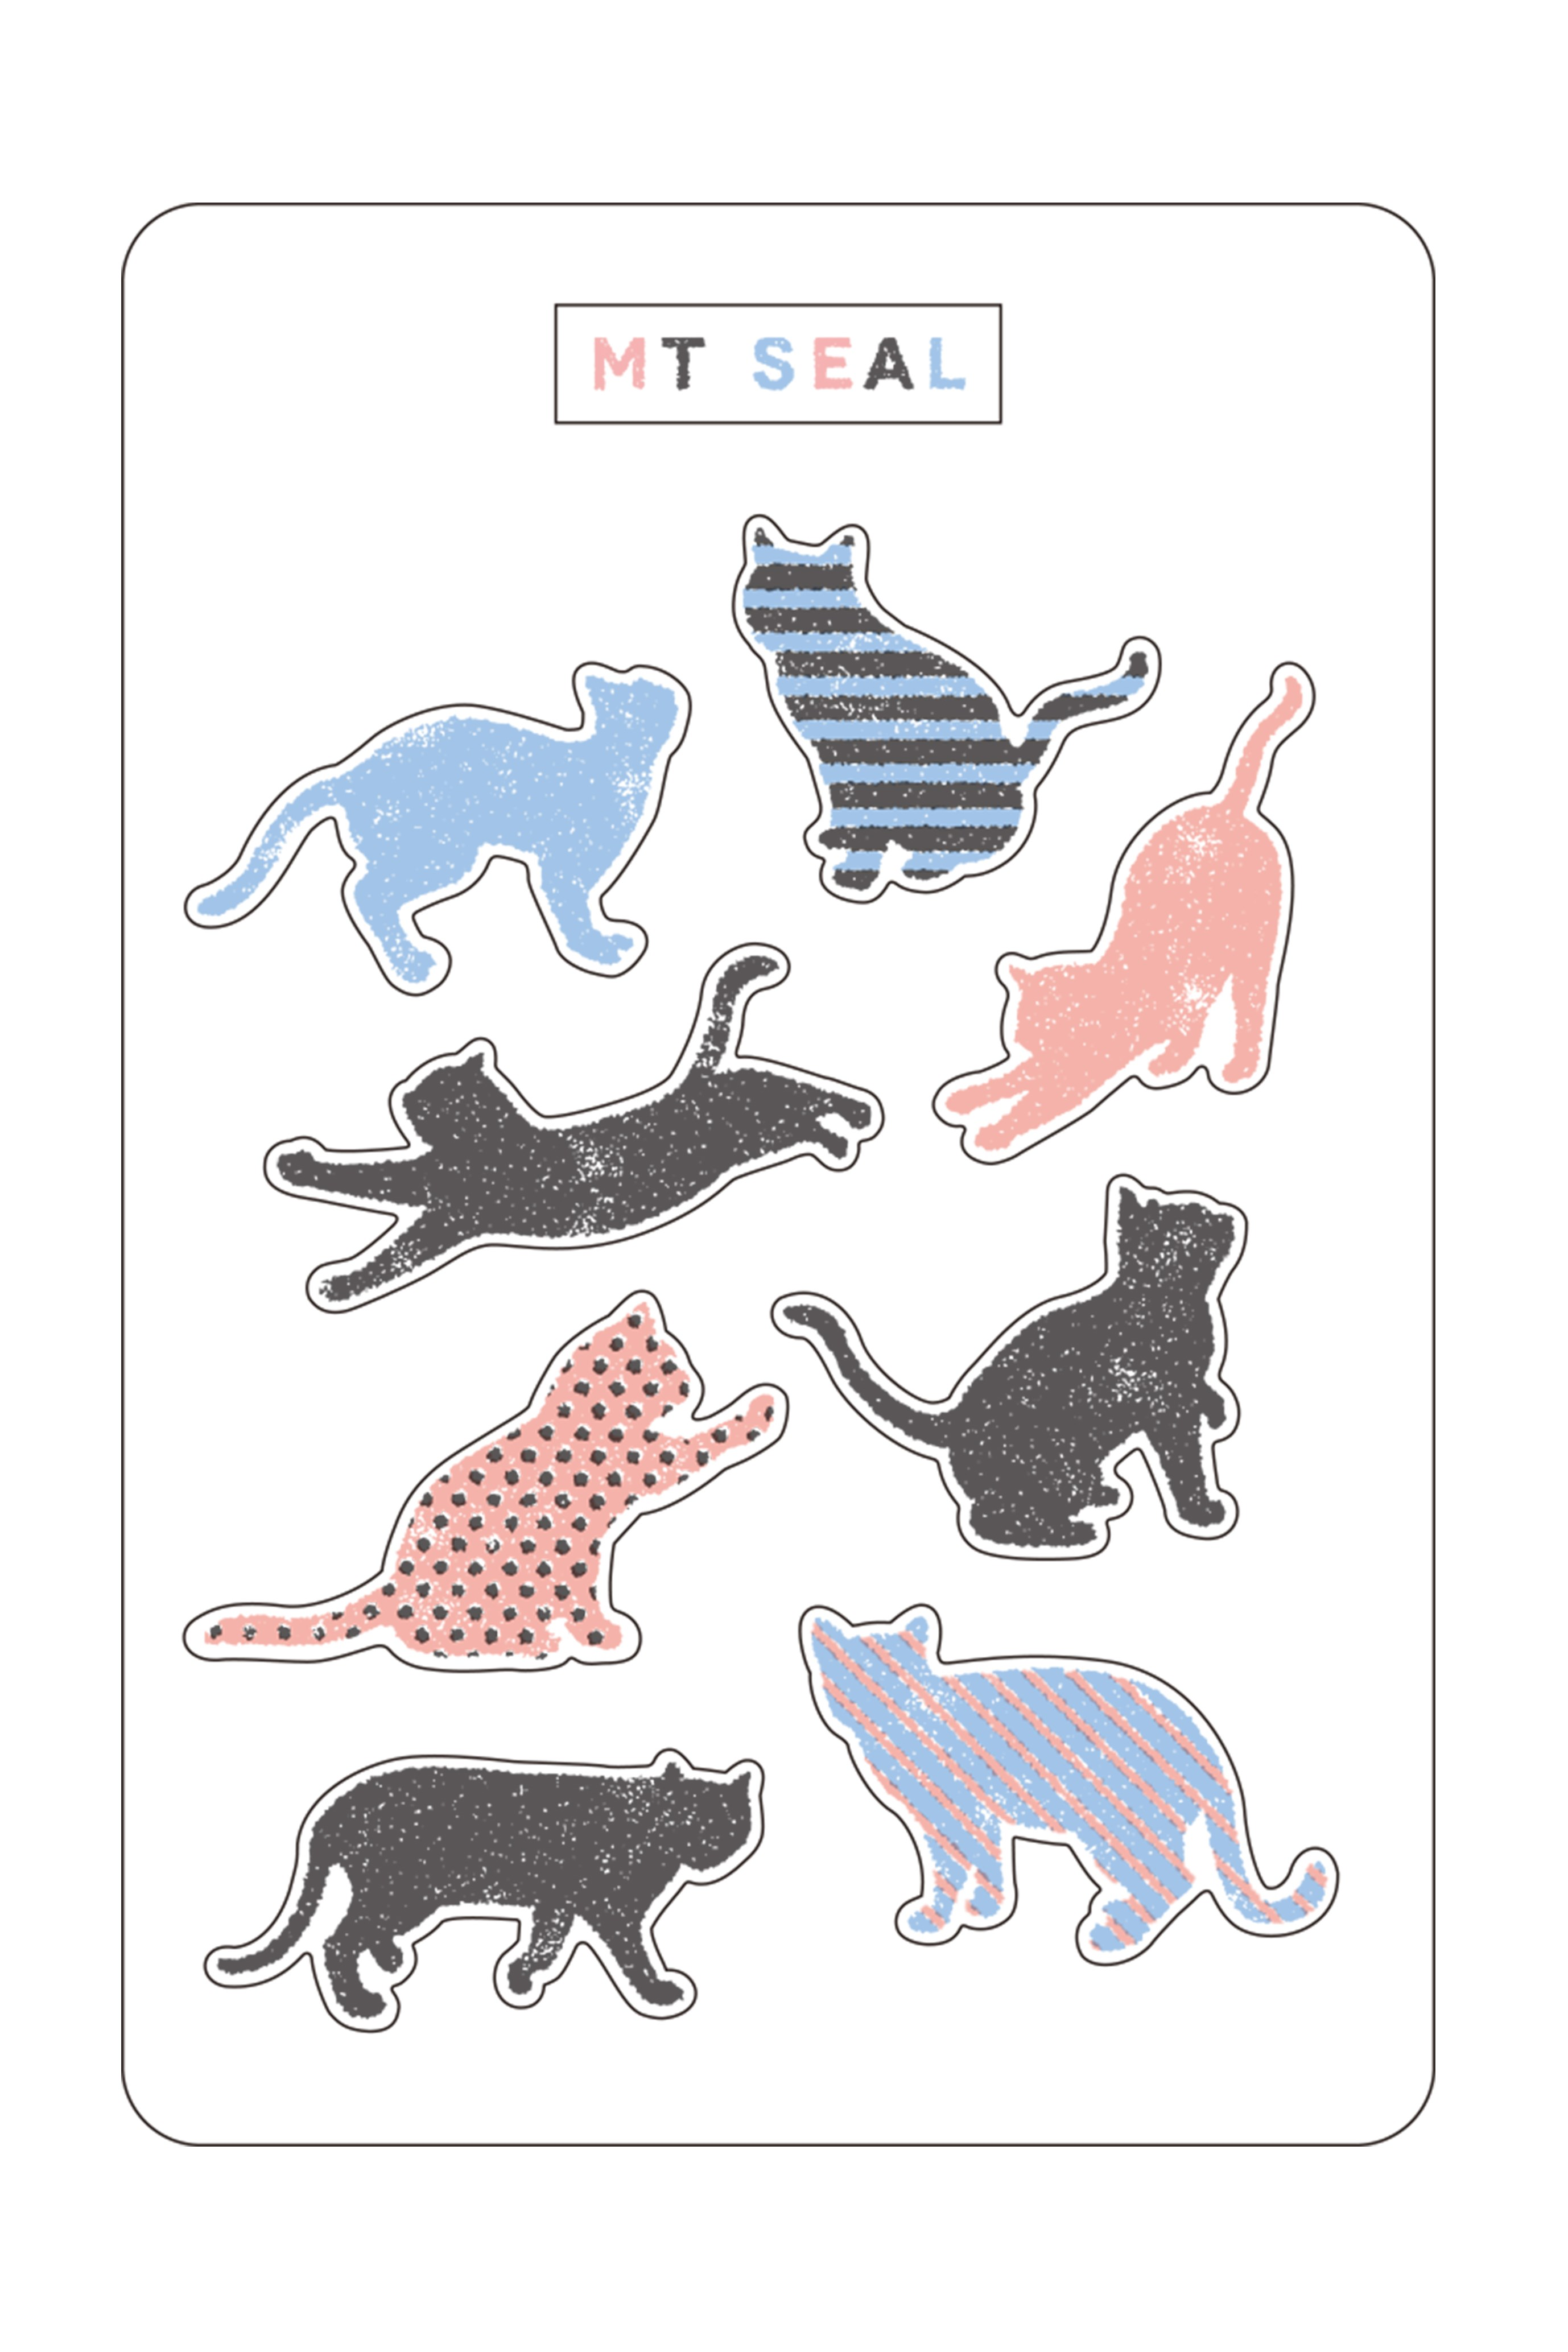 mt-washi-masking-tape-mt-seal-stickers-silhouette-cat-MTSEAL26-2.jpg